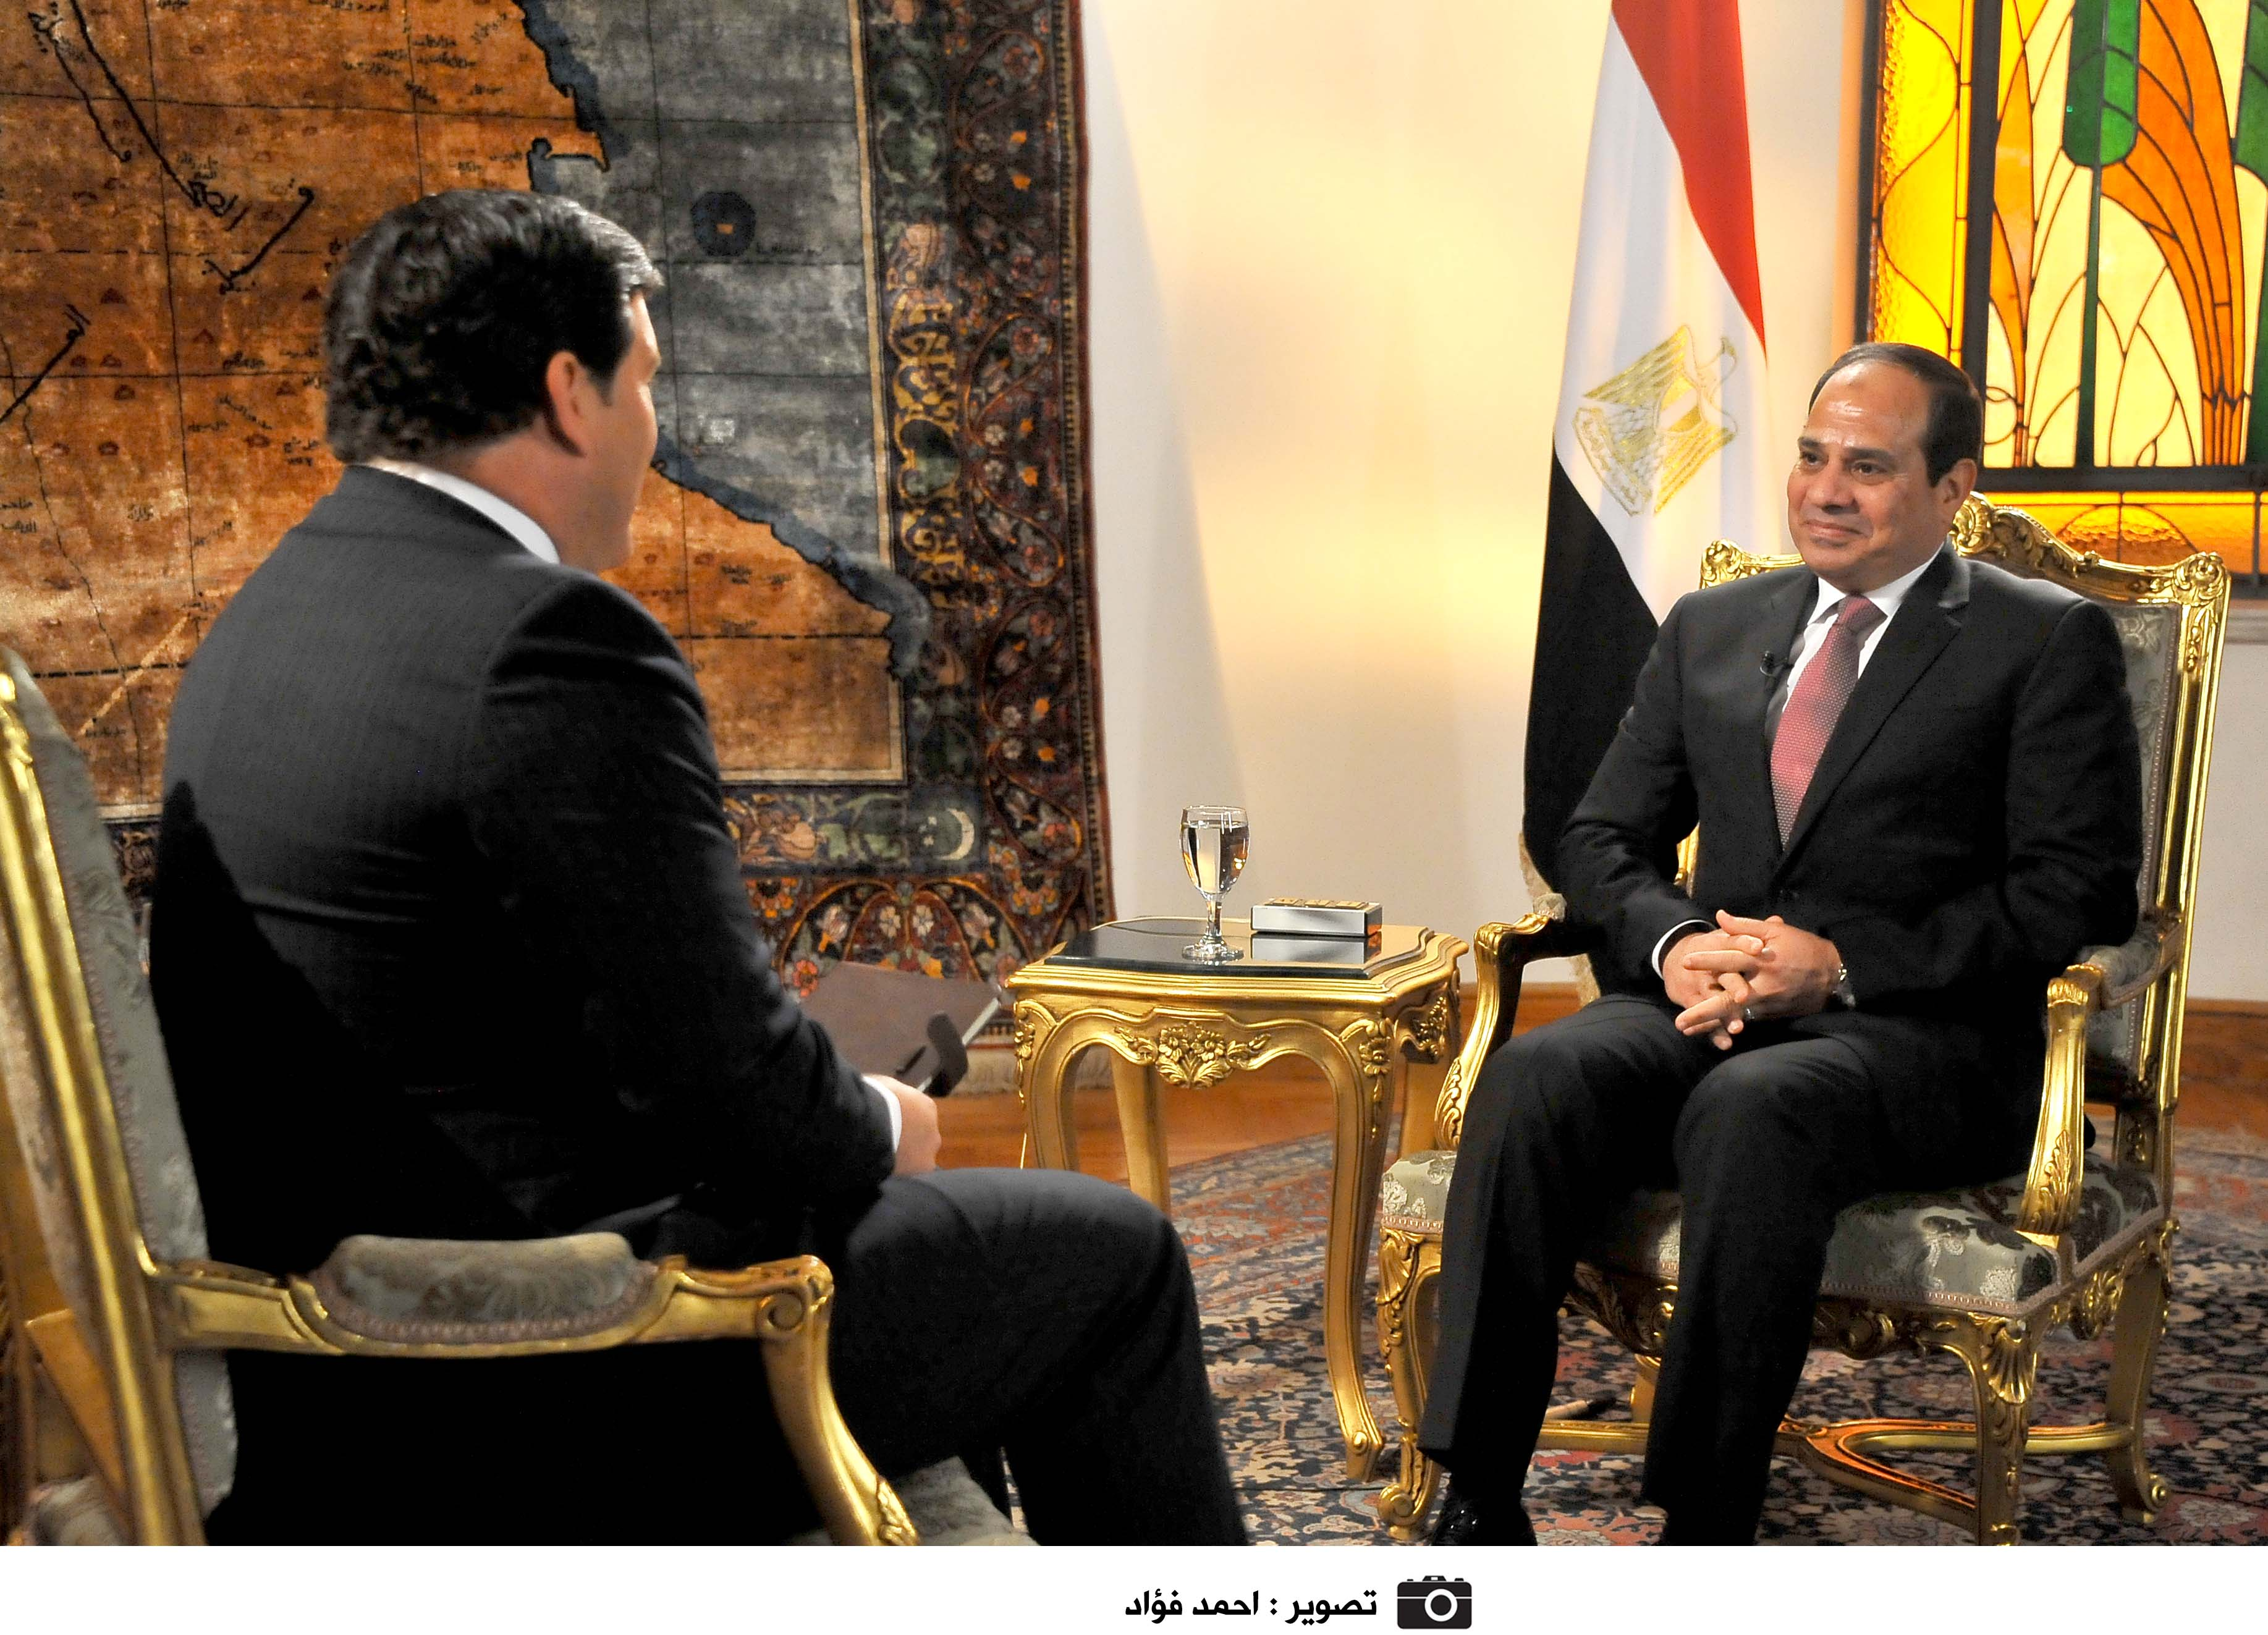 President Al-Sisi talked to Fox News on 9 March (Handout from the Presidency)